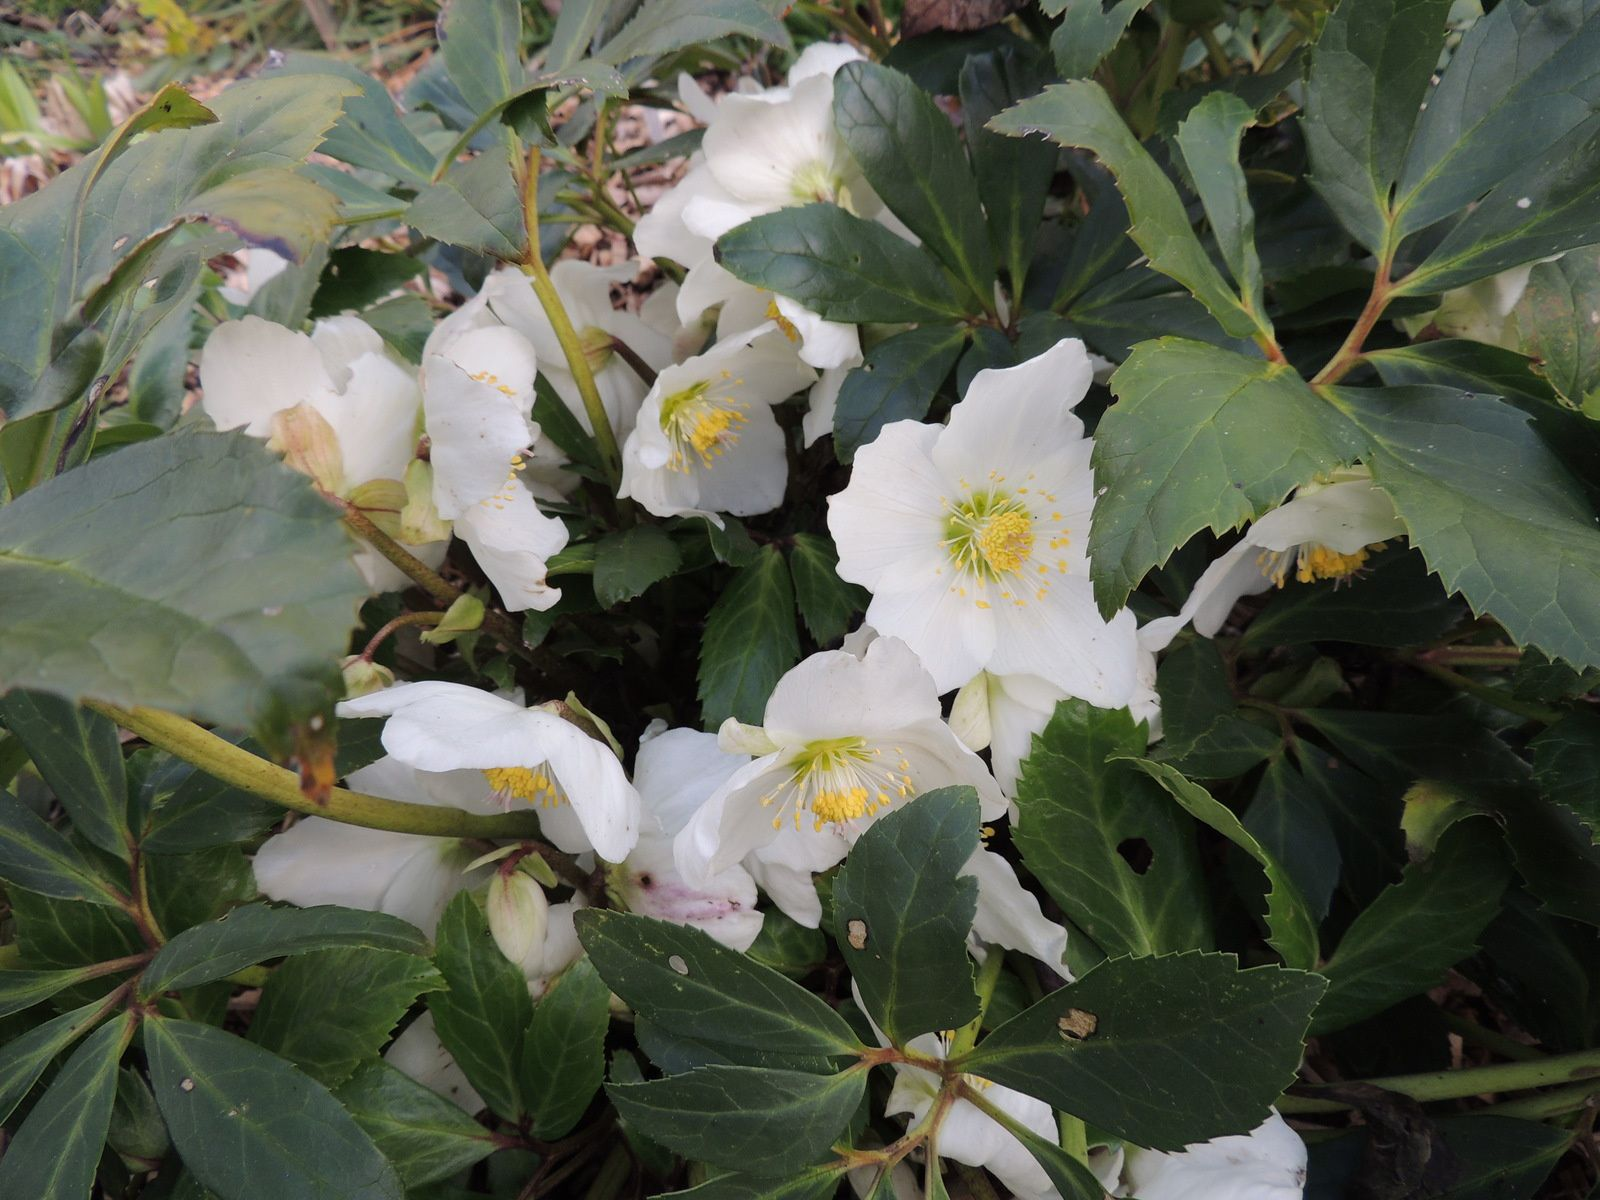 Hellebores blanches